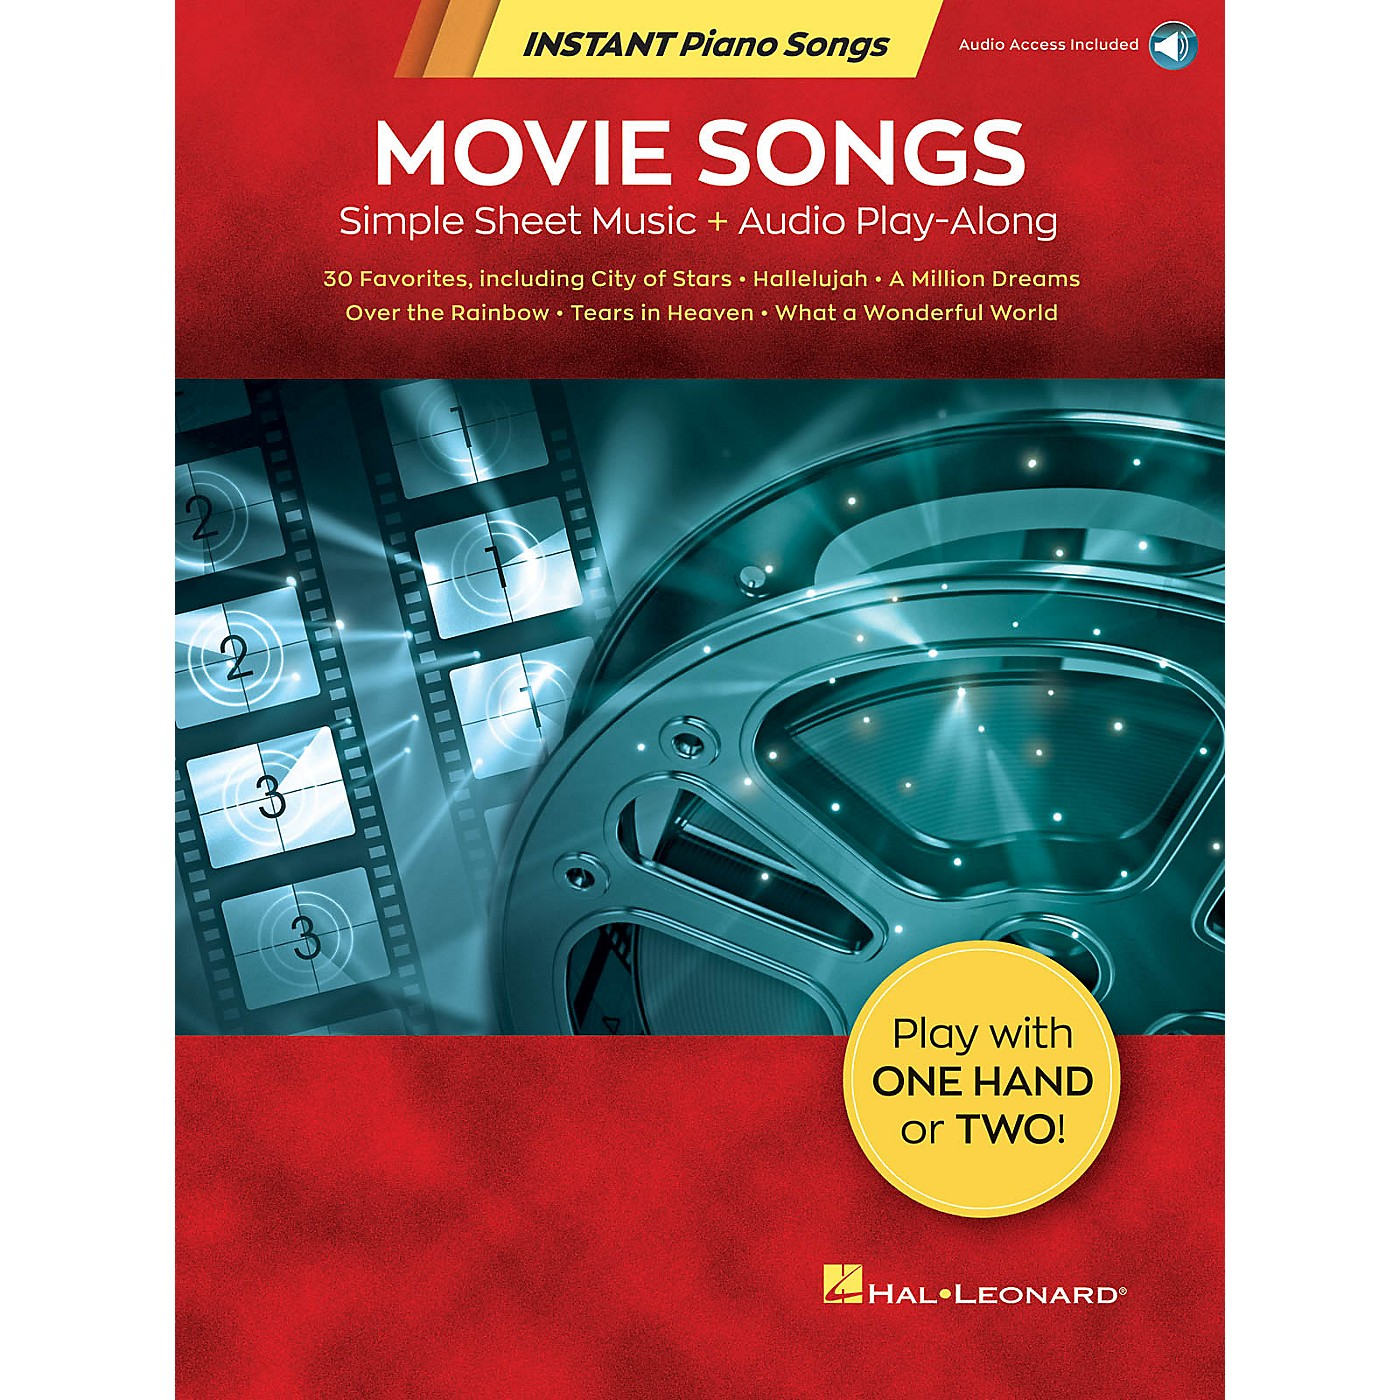 Hal Leonard Movie Songs - Instant Piano Songs - Simple Sheet Music Plus Audio Play-Along Book/Audio Online thumbnail